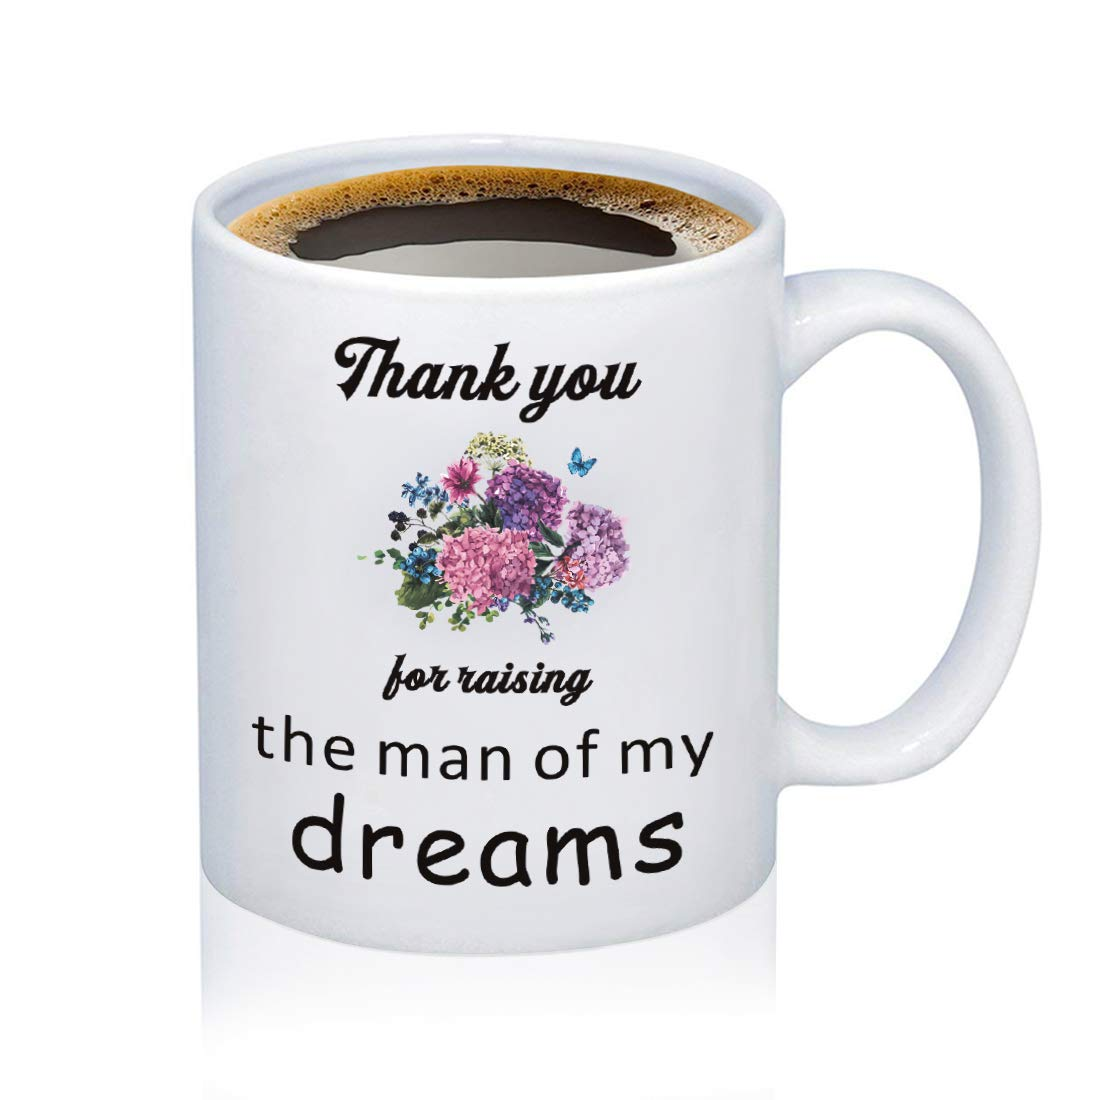 Mother In Law Gift Mothers Coffee Mug Wedding Gift Mother of the Groom/Bride Mug Thank ...  sc 1 st  Amzn.promo : wedding gift for mother in law - medton.org